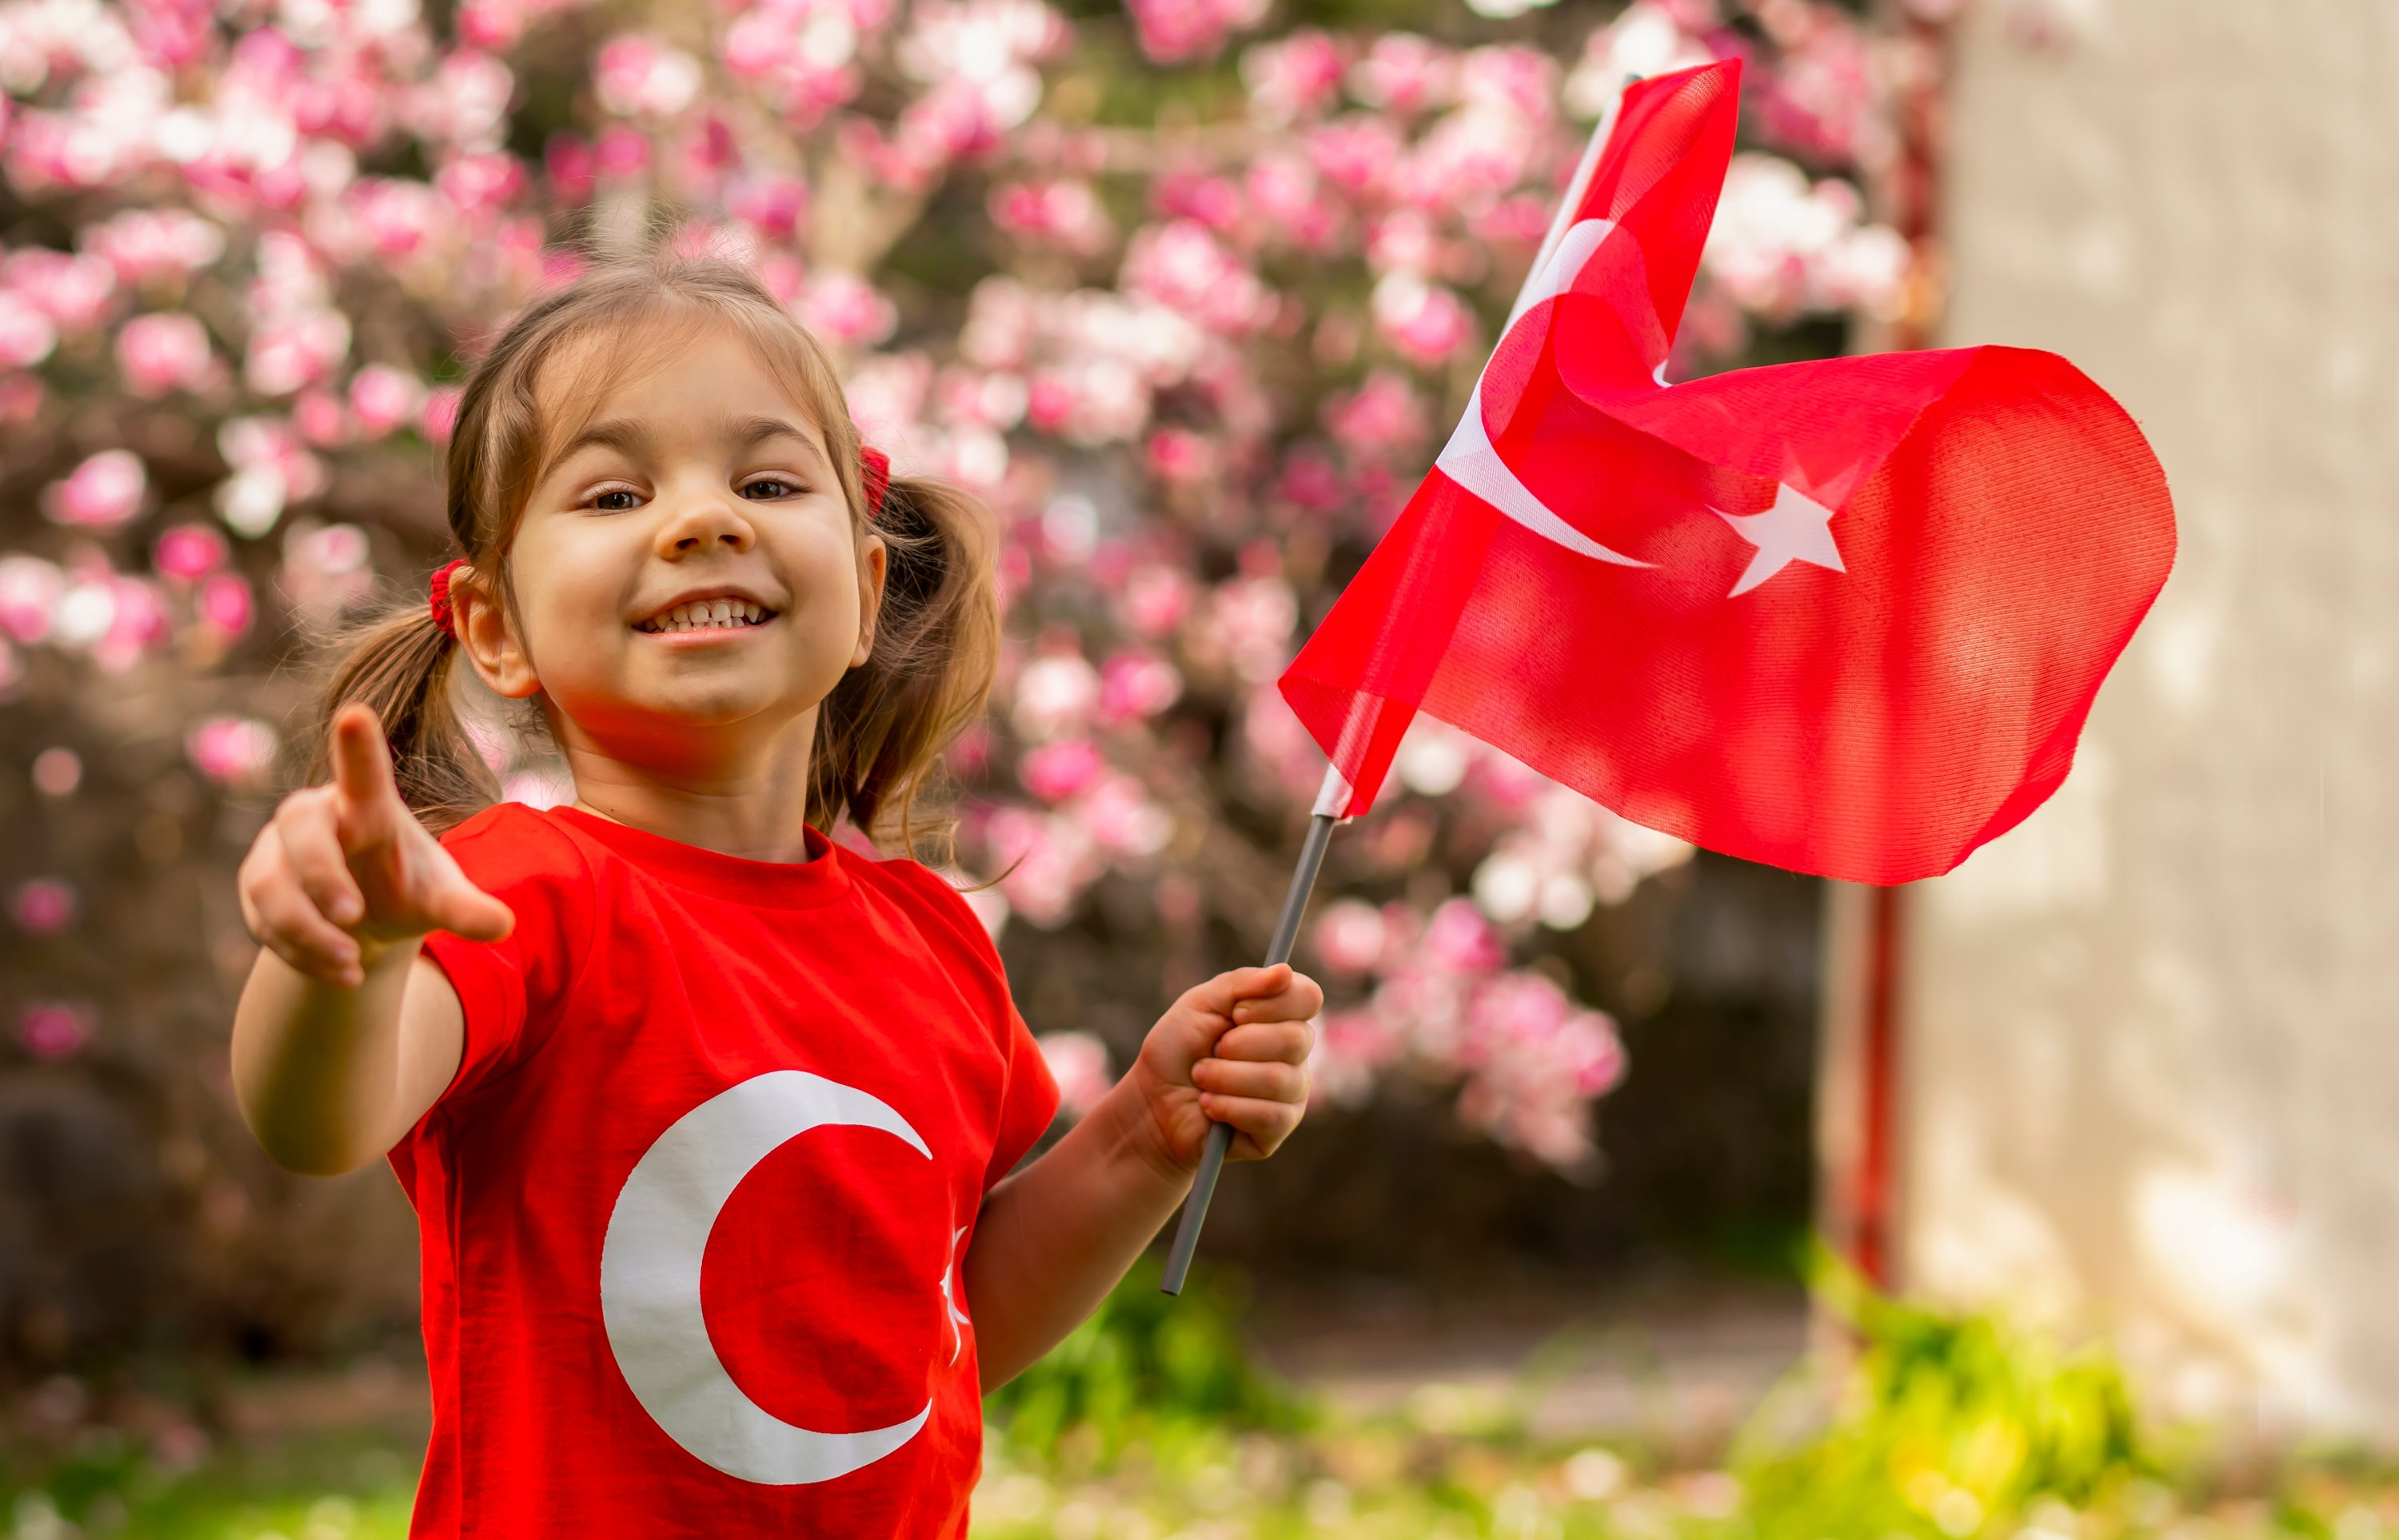 Toddler holds the Turkish flag in their hand. (Shutterstock Photo)